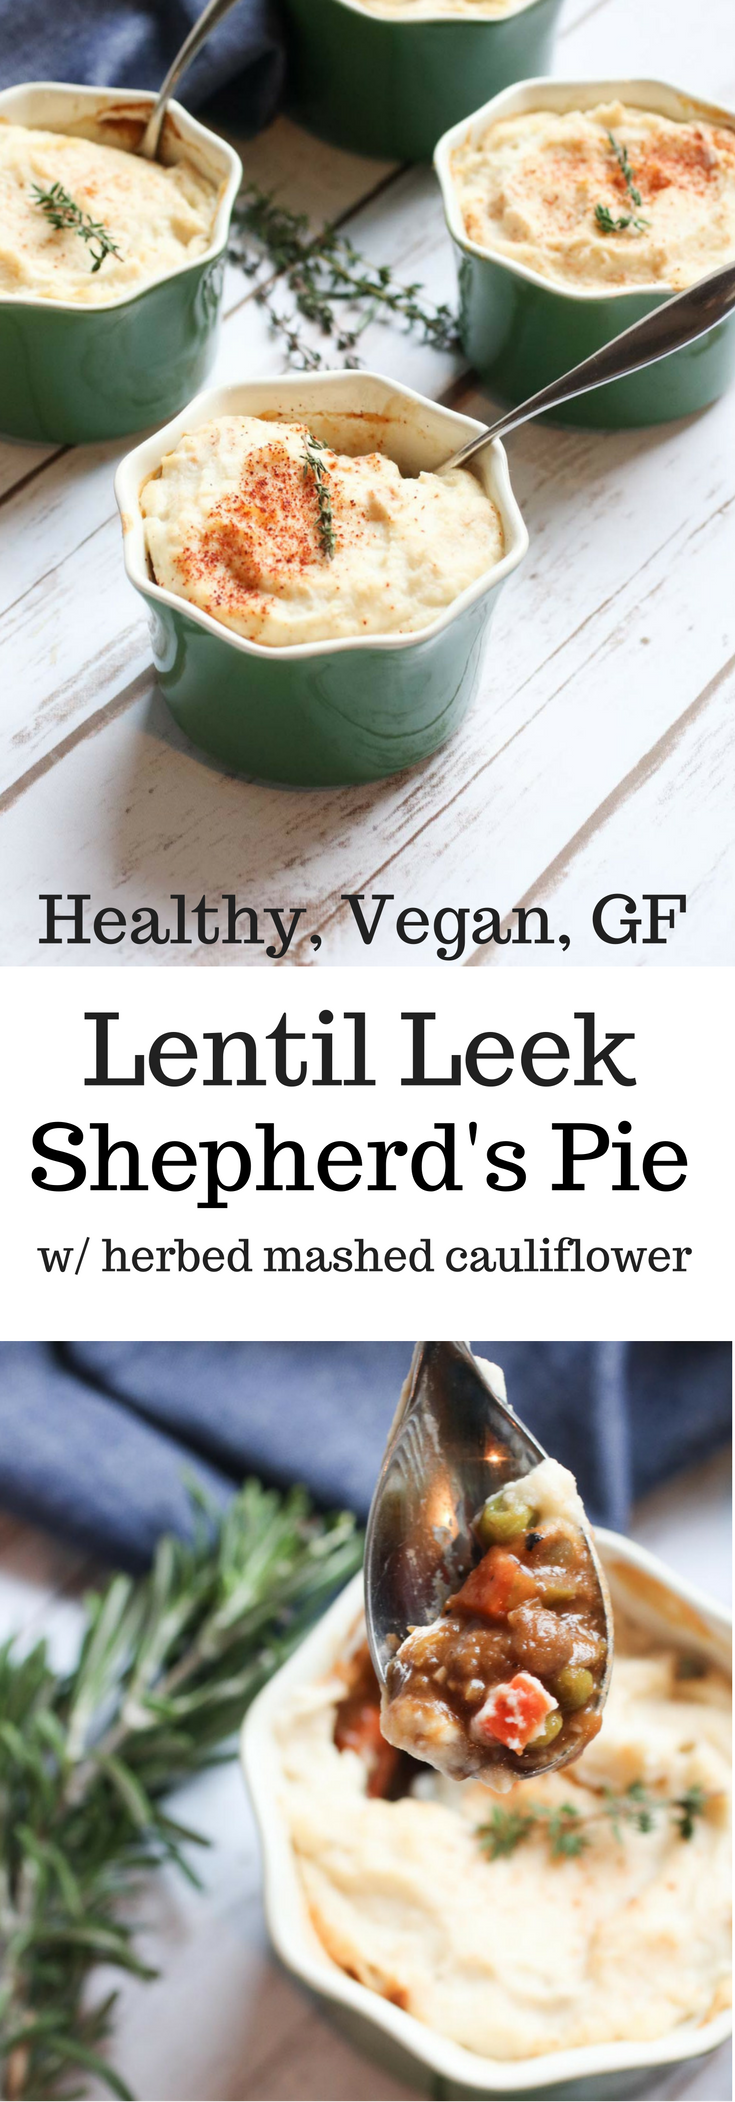 Vegan lentil shephards pie with mashed cauliflower. Next level comfort food, slowly simmered lentils and leeks topped with fragrant rosemary mashed cauliflower. Vegan, gluten-free, and totally delicious |abraskitchen.com